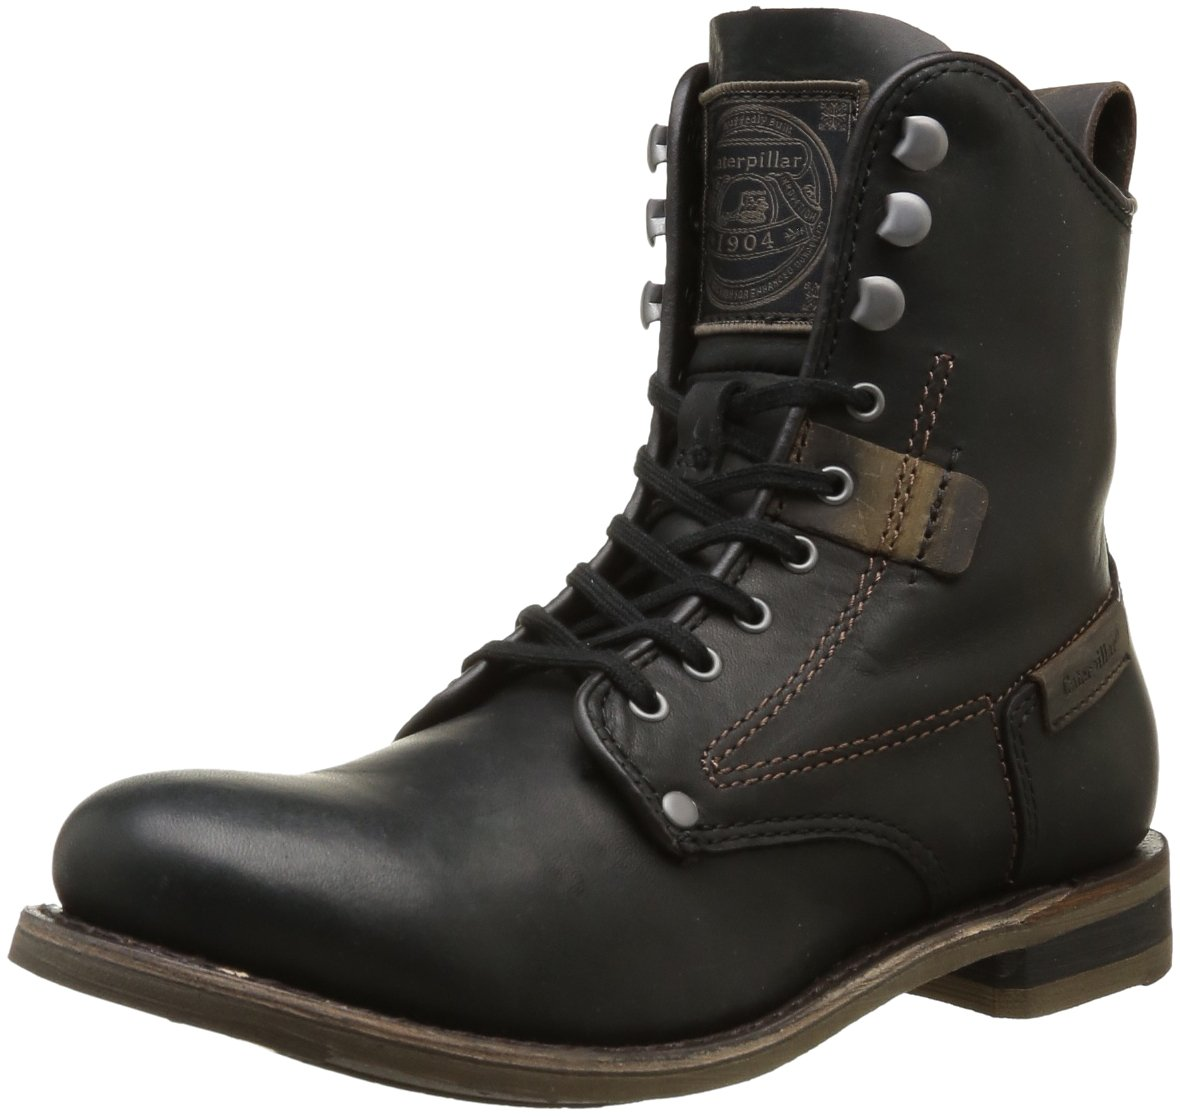 Caterpillar Men's Orson Boot B007H3TO28 11 D(M) US|Black